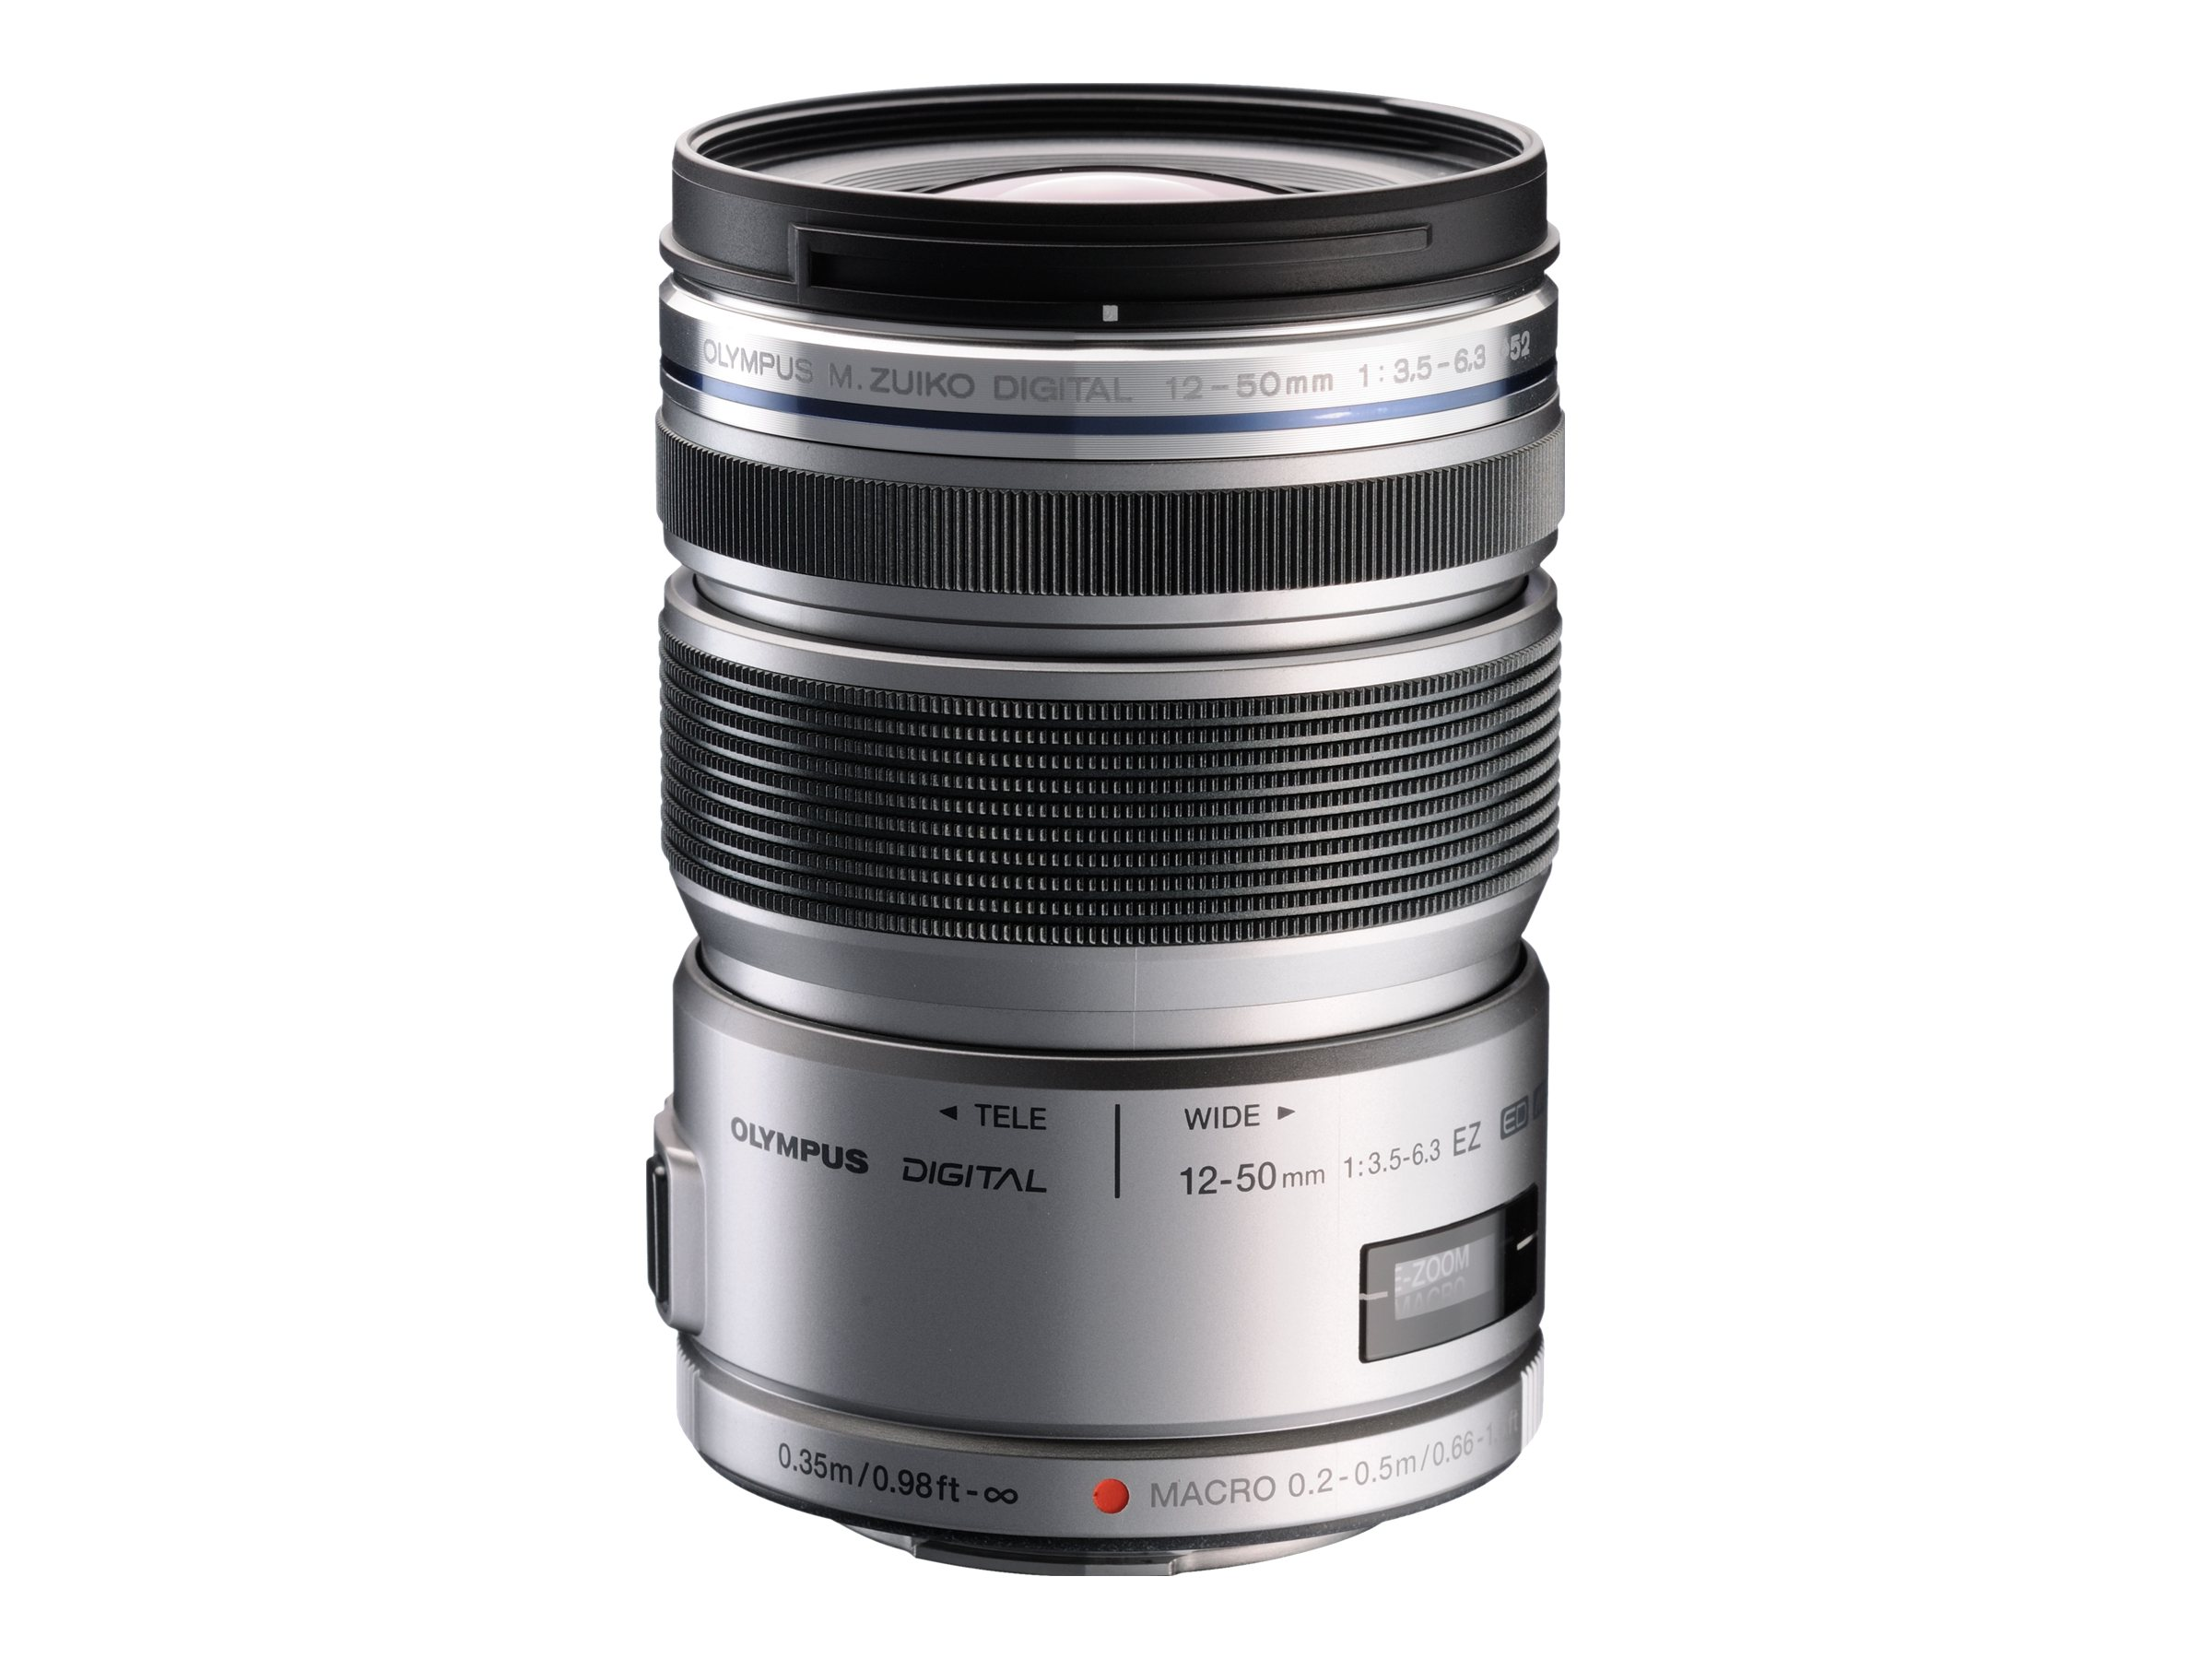 Olympus M. Zuiko Digital ED 12-50mm F3.5-6.3 EZ Lens - Silver, V314040SU000, 16209765, Camera & Camcorder Lenses & Filters